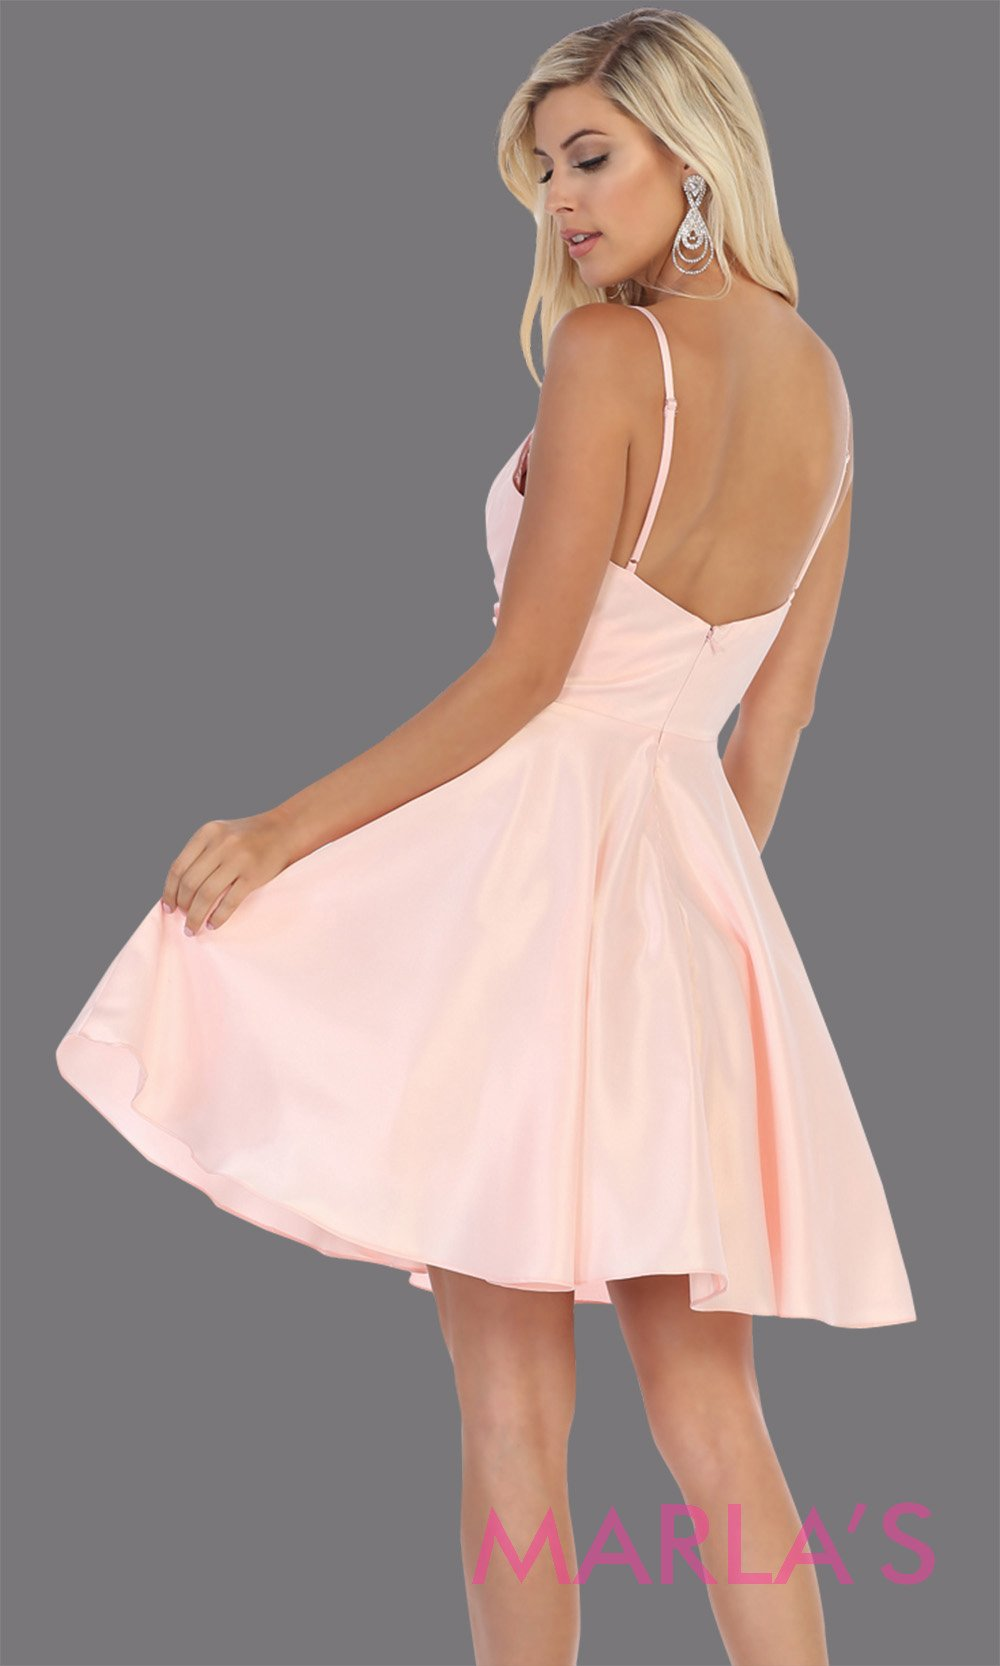 Back of Short v neck blush pink grade 8 graduation dress with flowy skirt from mayqueen.This light pink simple dress is perfect for plus size grad, homecoming, Bat Mitzvah, quinceanera damas,middle school graduation,bridal shower,junior bridesmaids